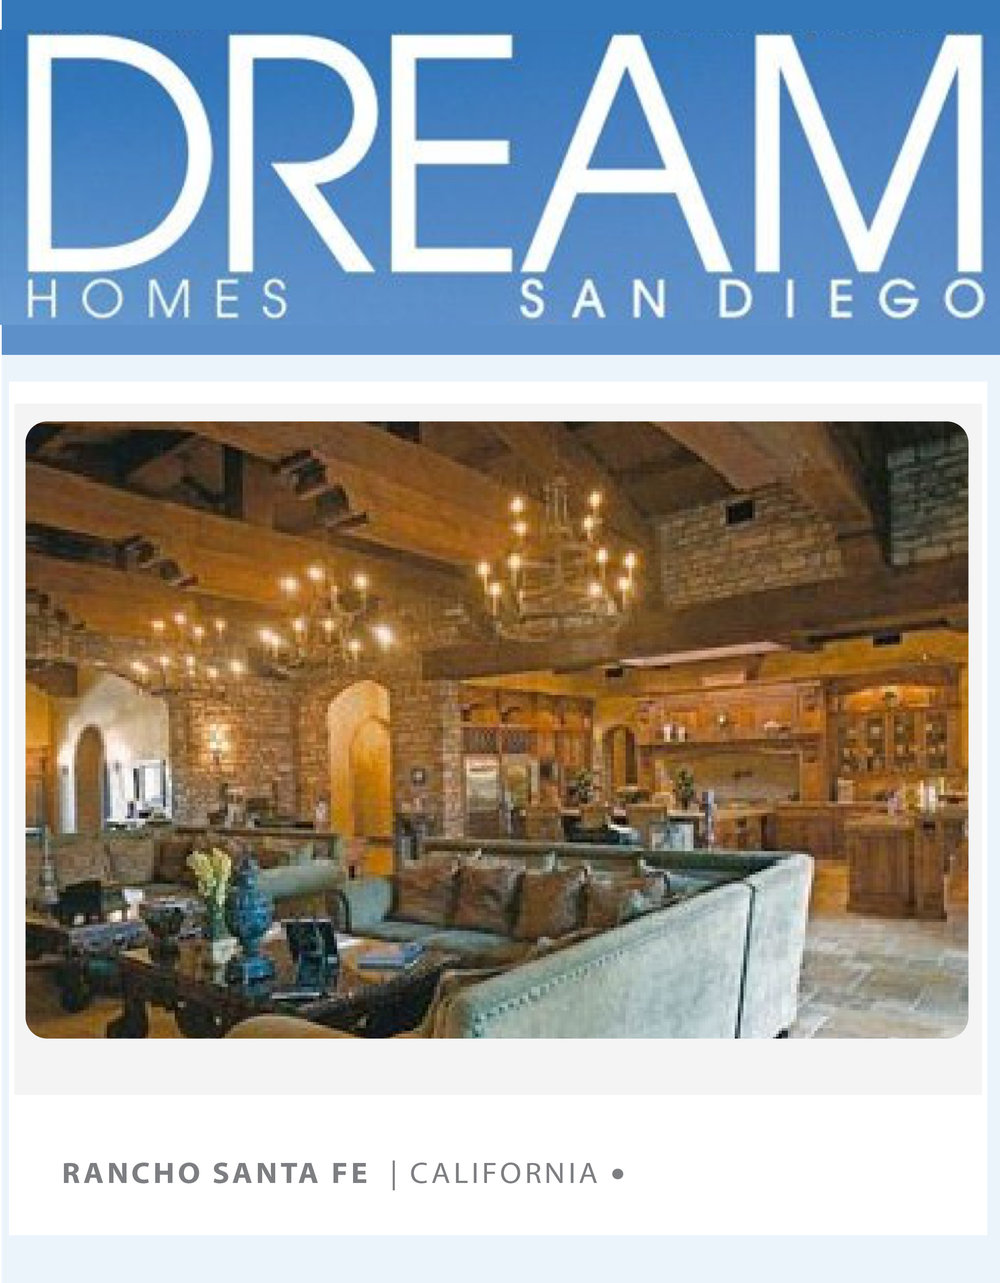 DREAM HOMES - NOV 2007